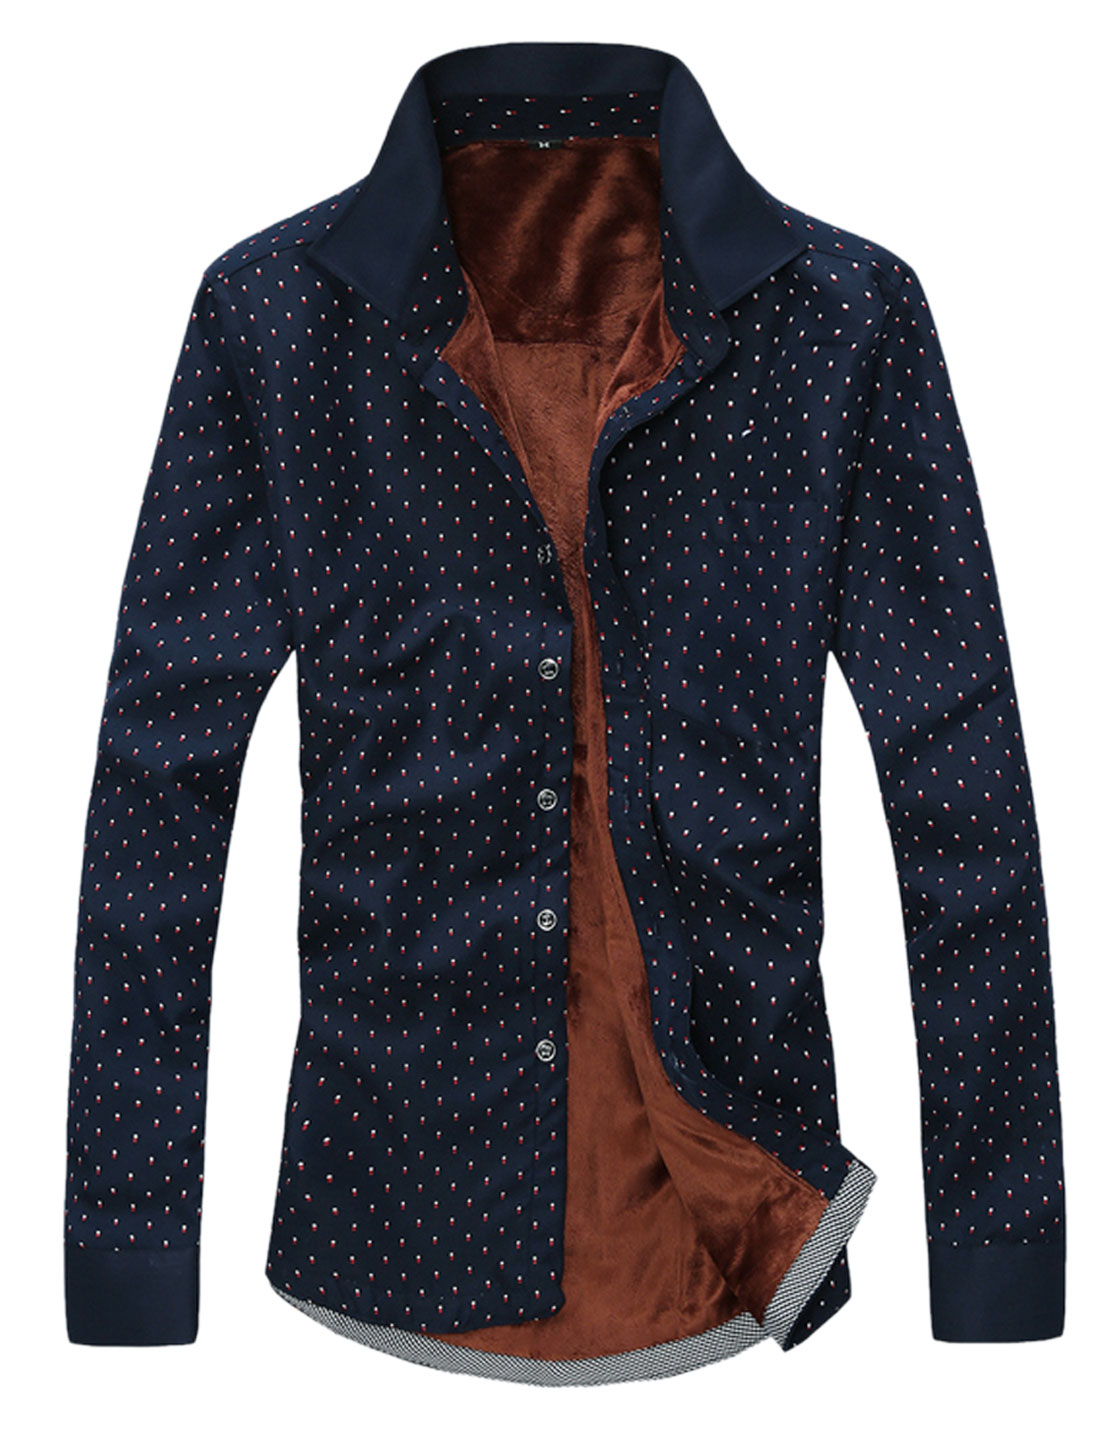 Men Dots Pattern Single Breasted Chest Pocket Velvet Lining Shirt Navy Blue M